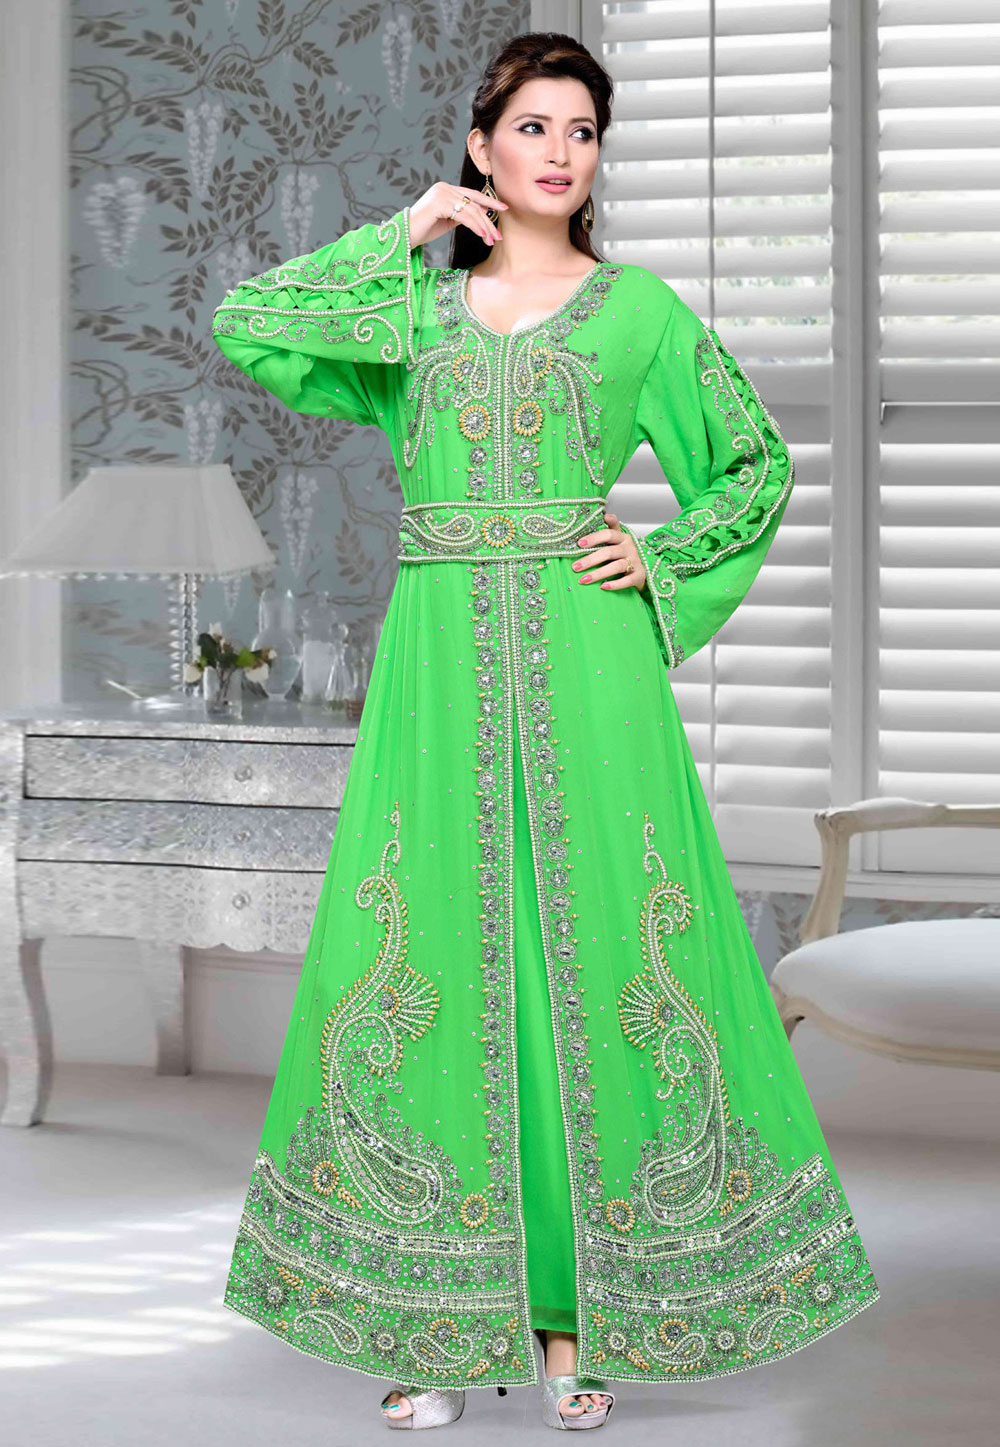 Green Faux Georgette Embroidered Readymade Kaftan 194713